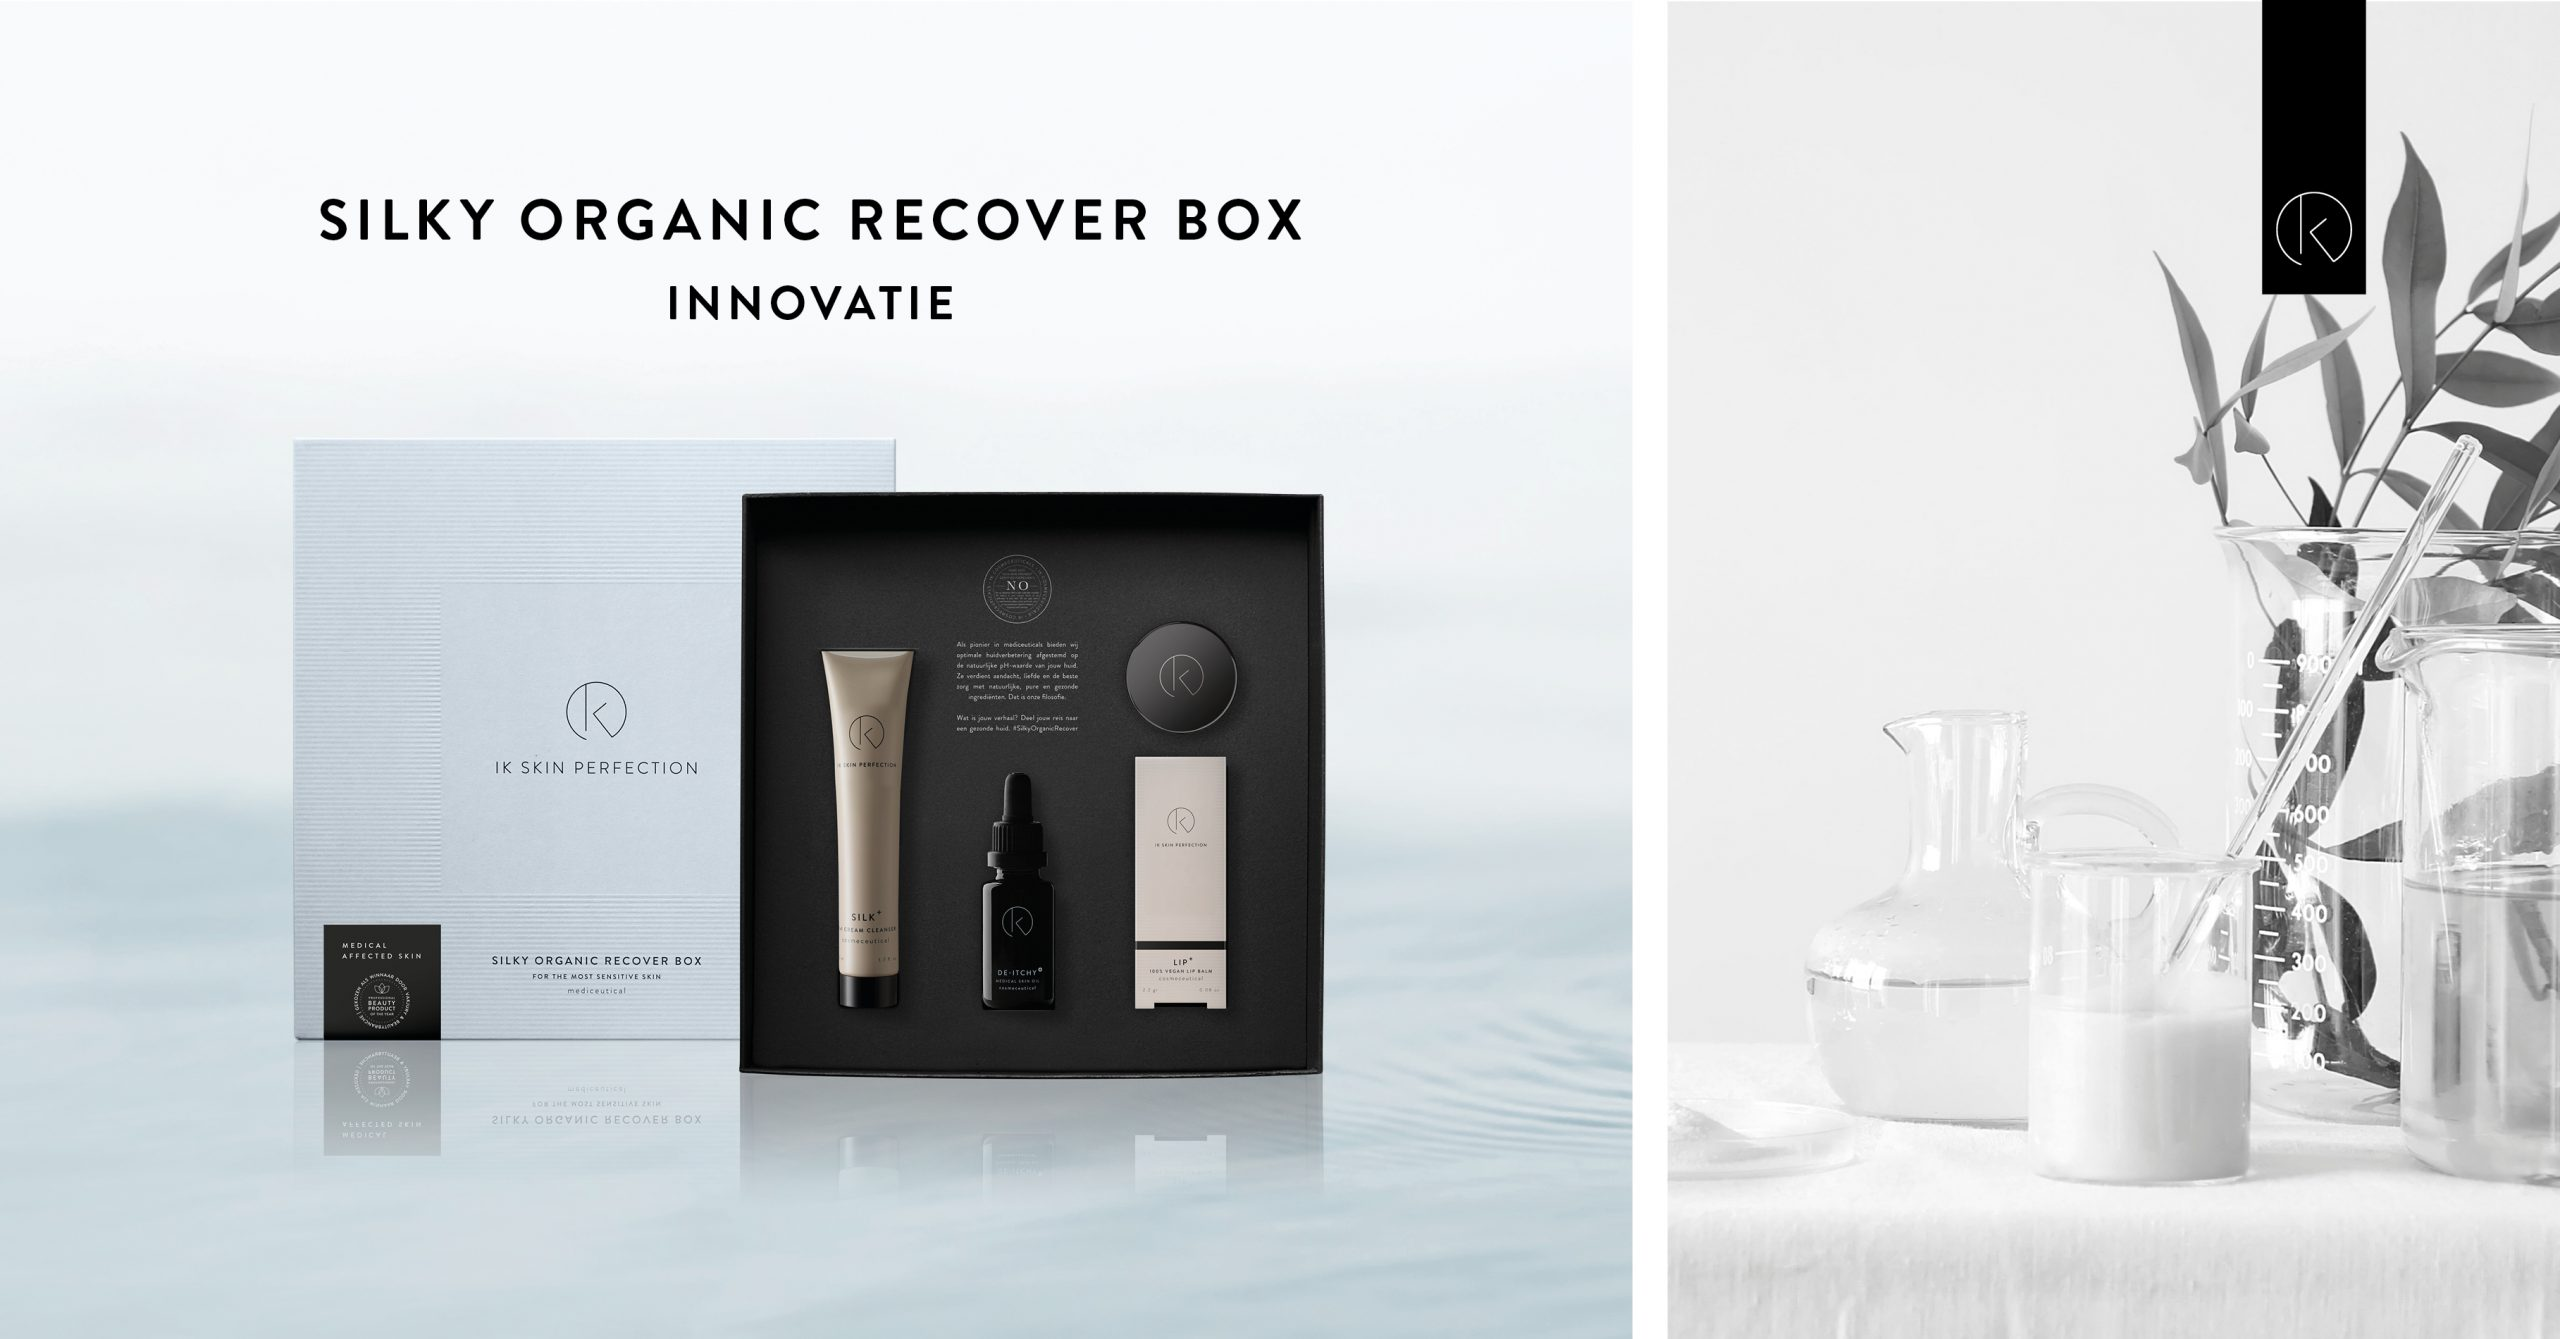 Silky Organic Recover box - IK Skin Perfection